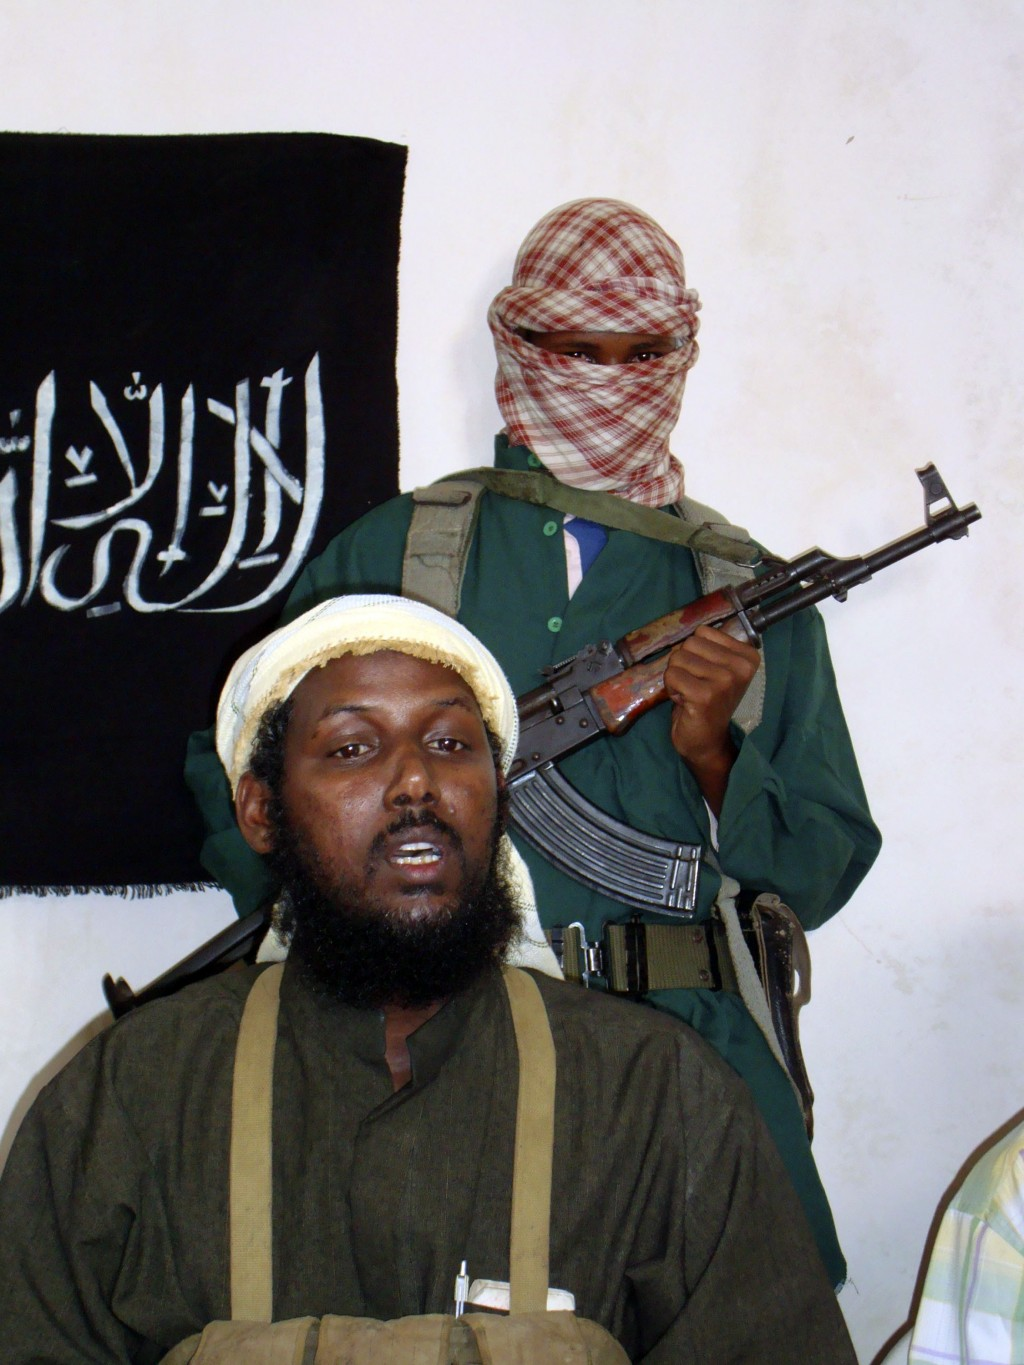 FILE - In this Sunday, Dec.14, 2008 file photo, Mukhtar Robow, then spokesman for the al-Qaida-linked militant group al-Shabab, speaks to the media in